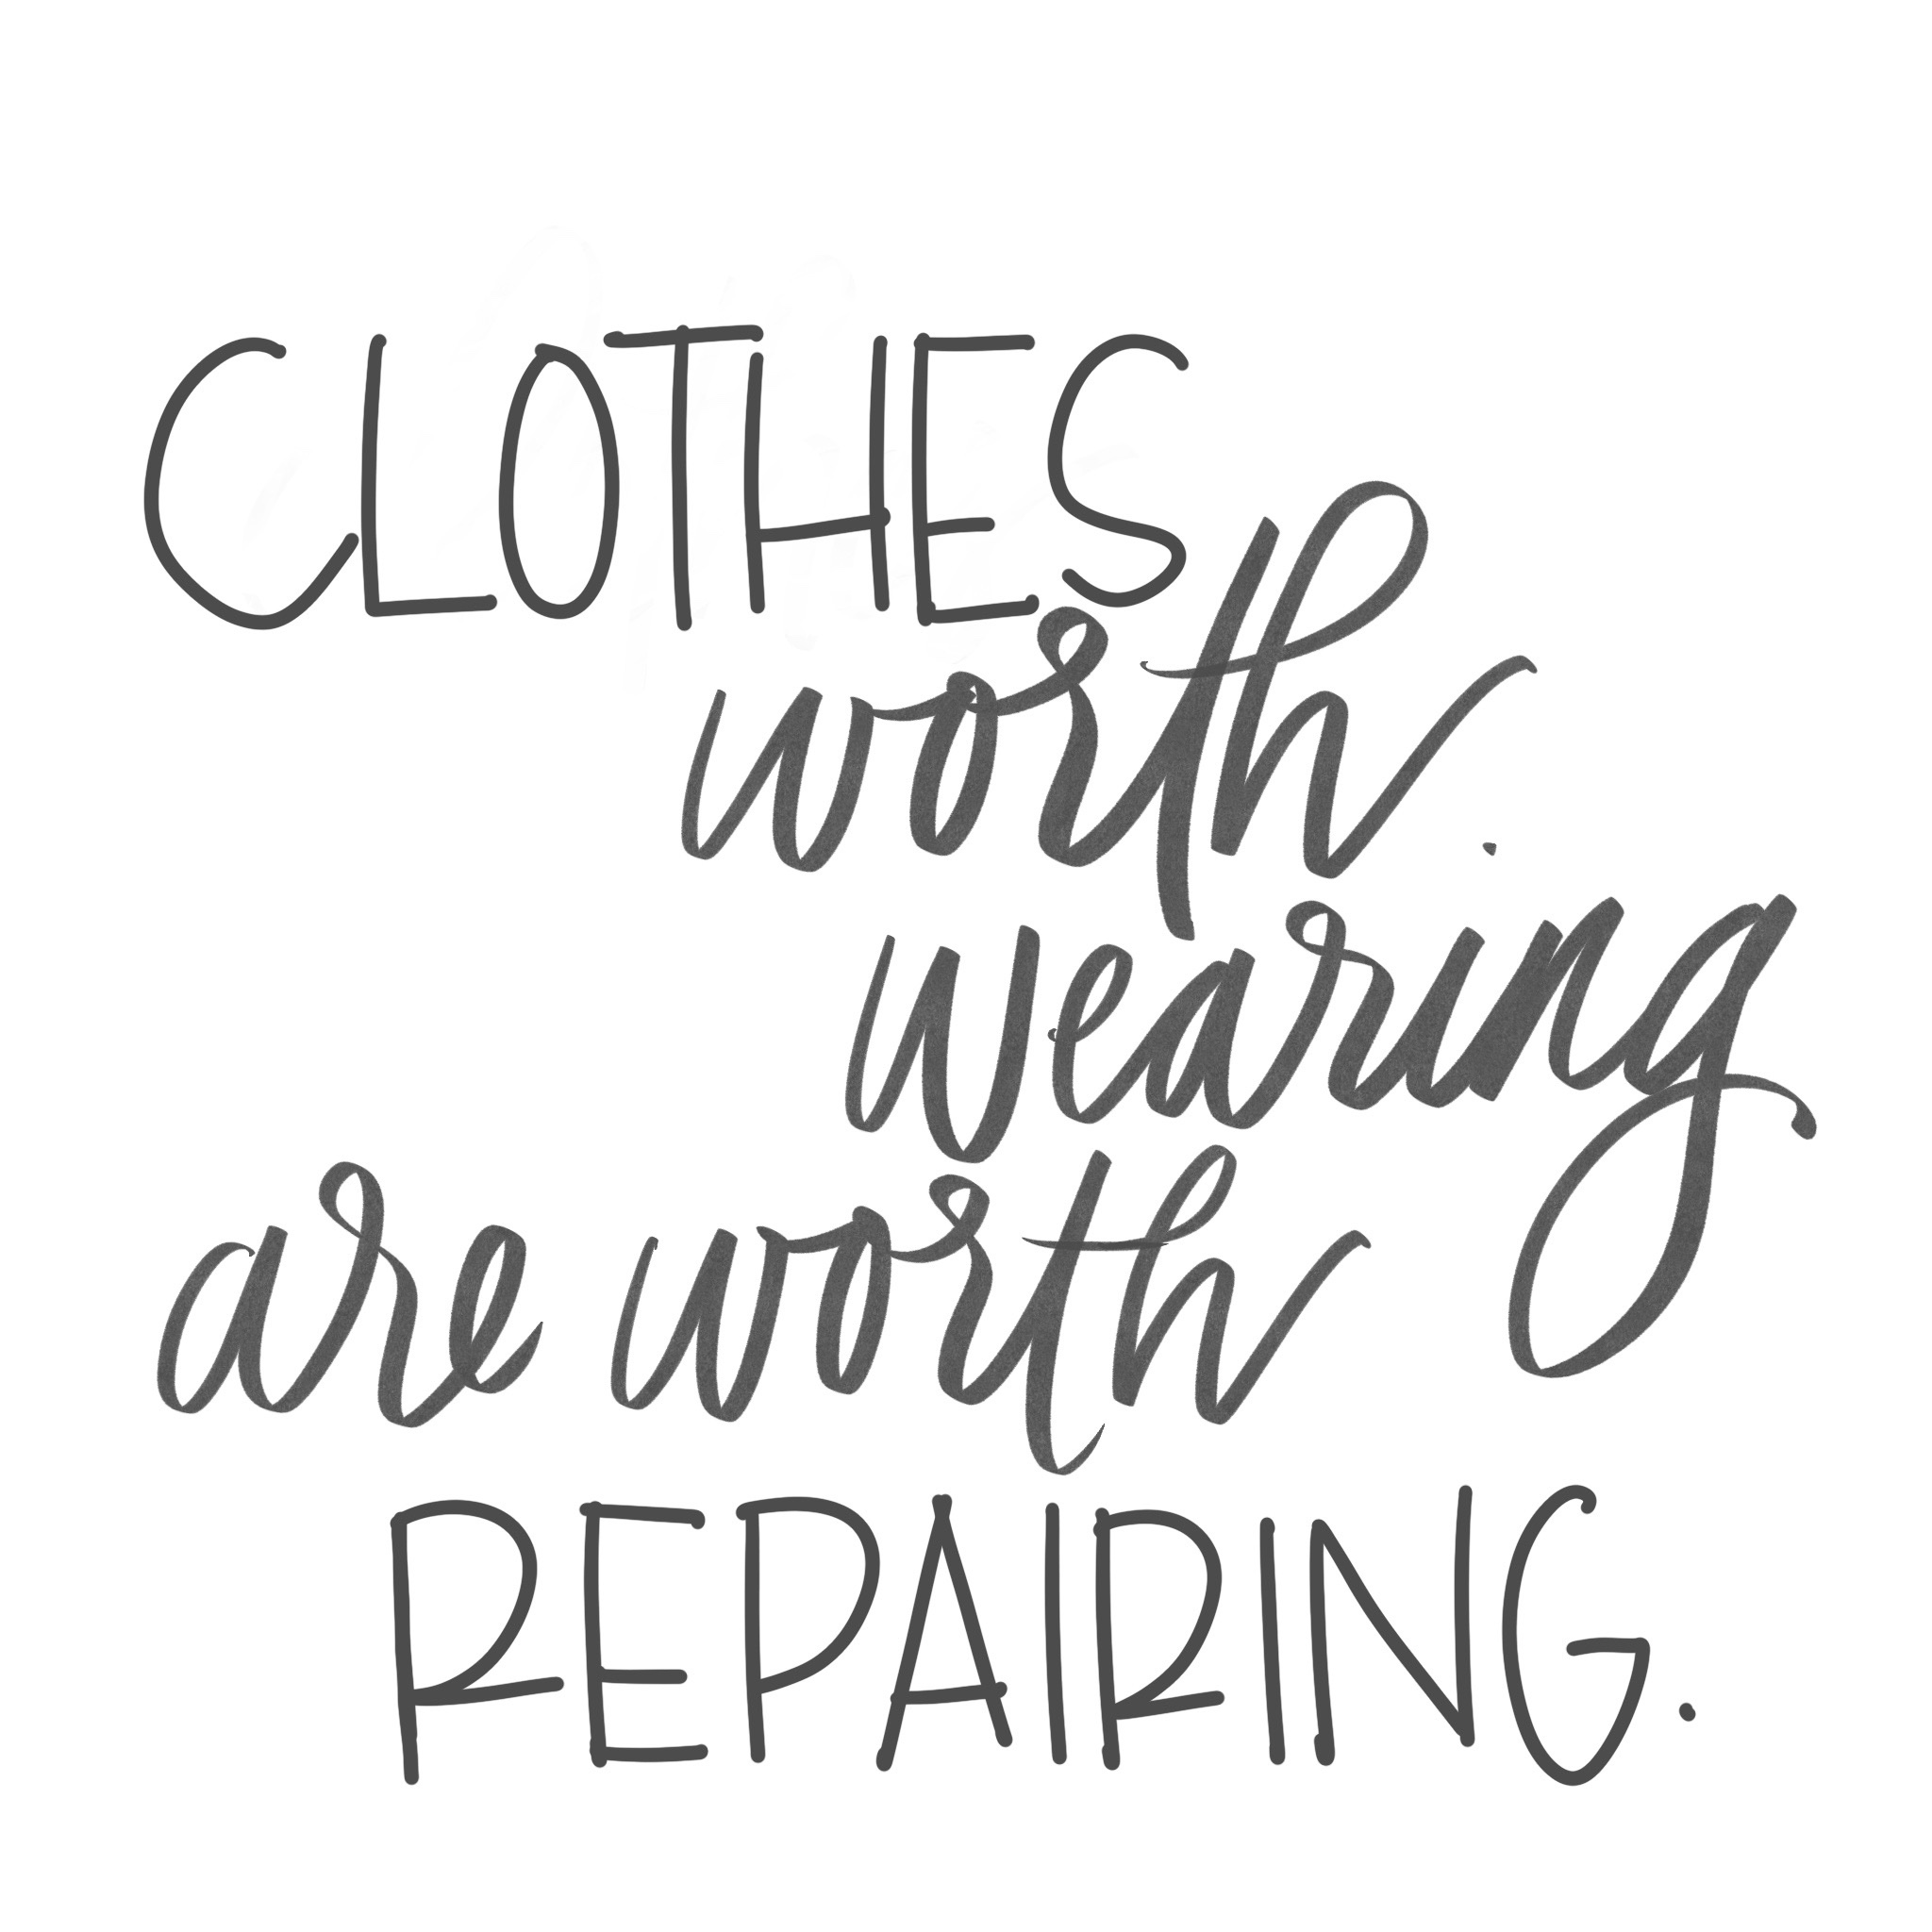 kdelap_clothes_repairing.jpeg